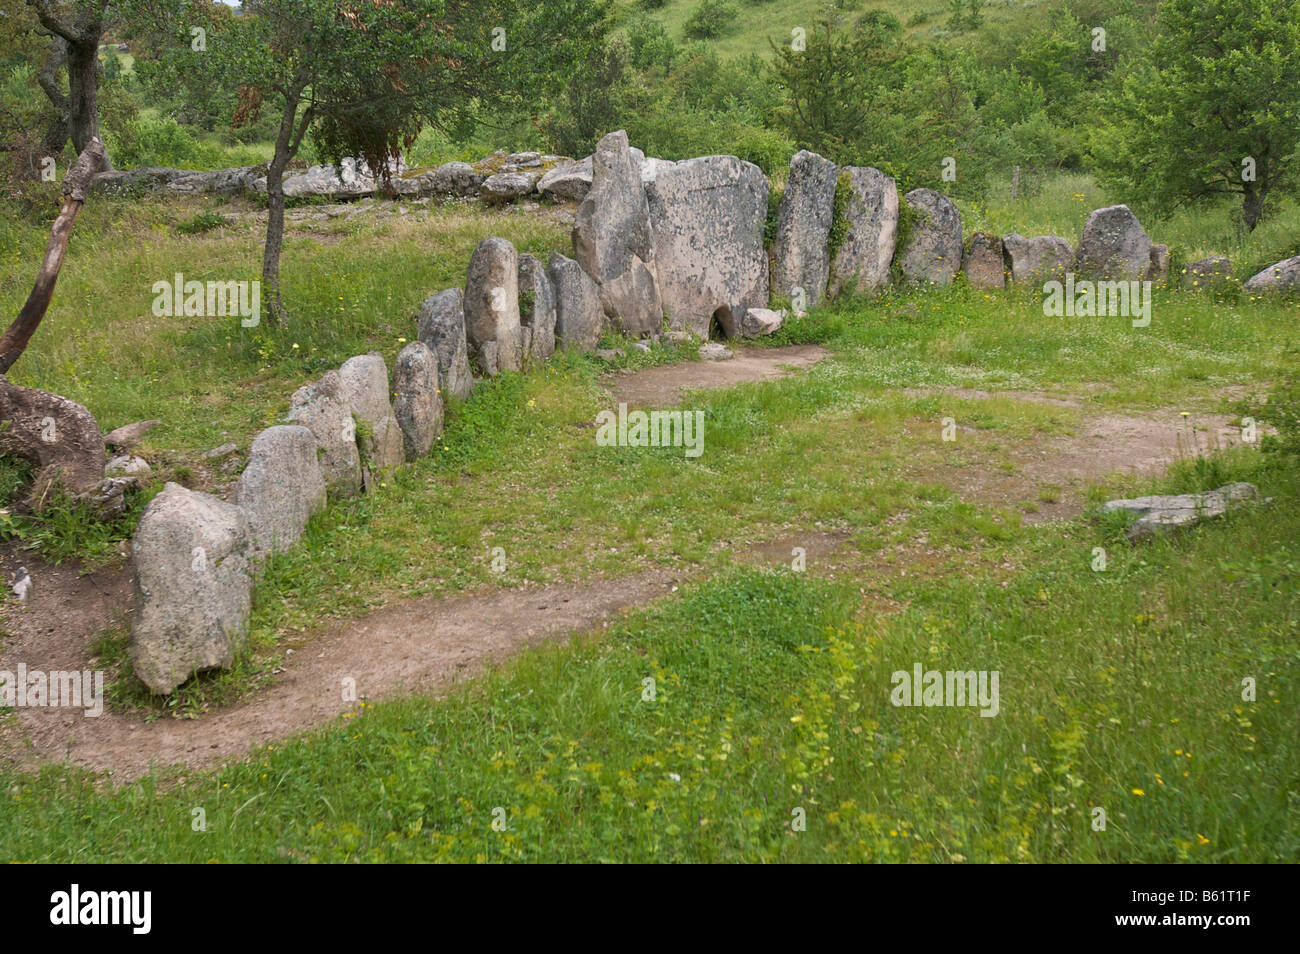 Pascaredda, Giants Tomb near Calangianus, Sardinia, Italy, Europe - Stock Image